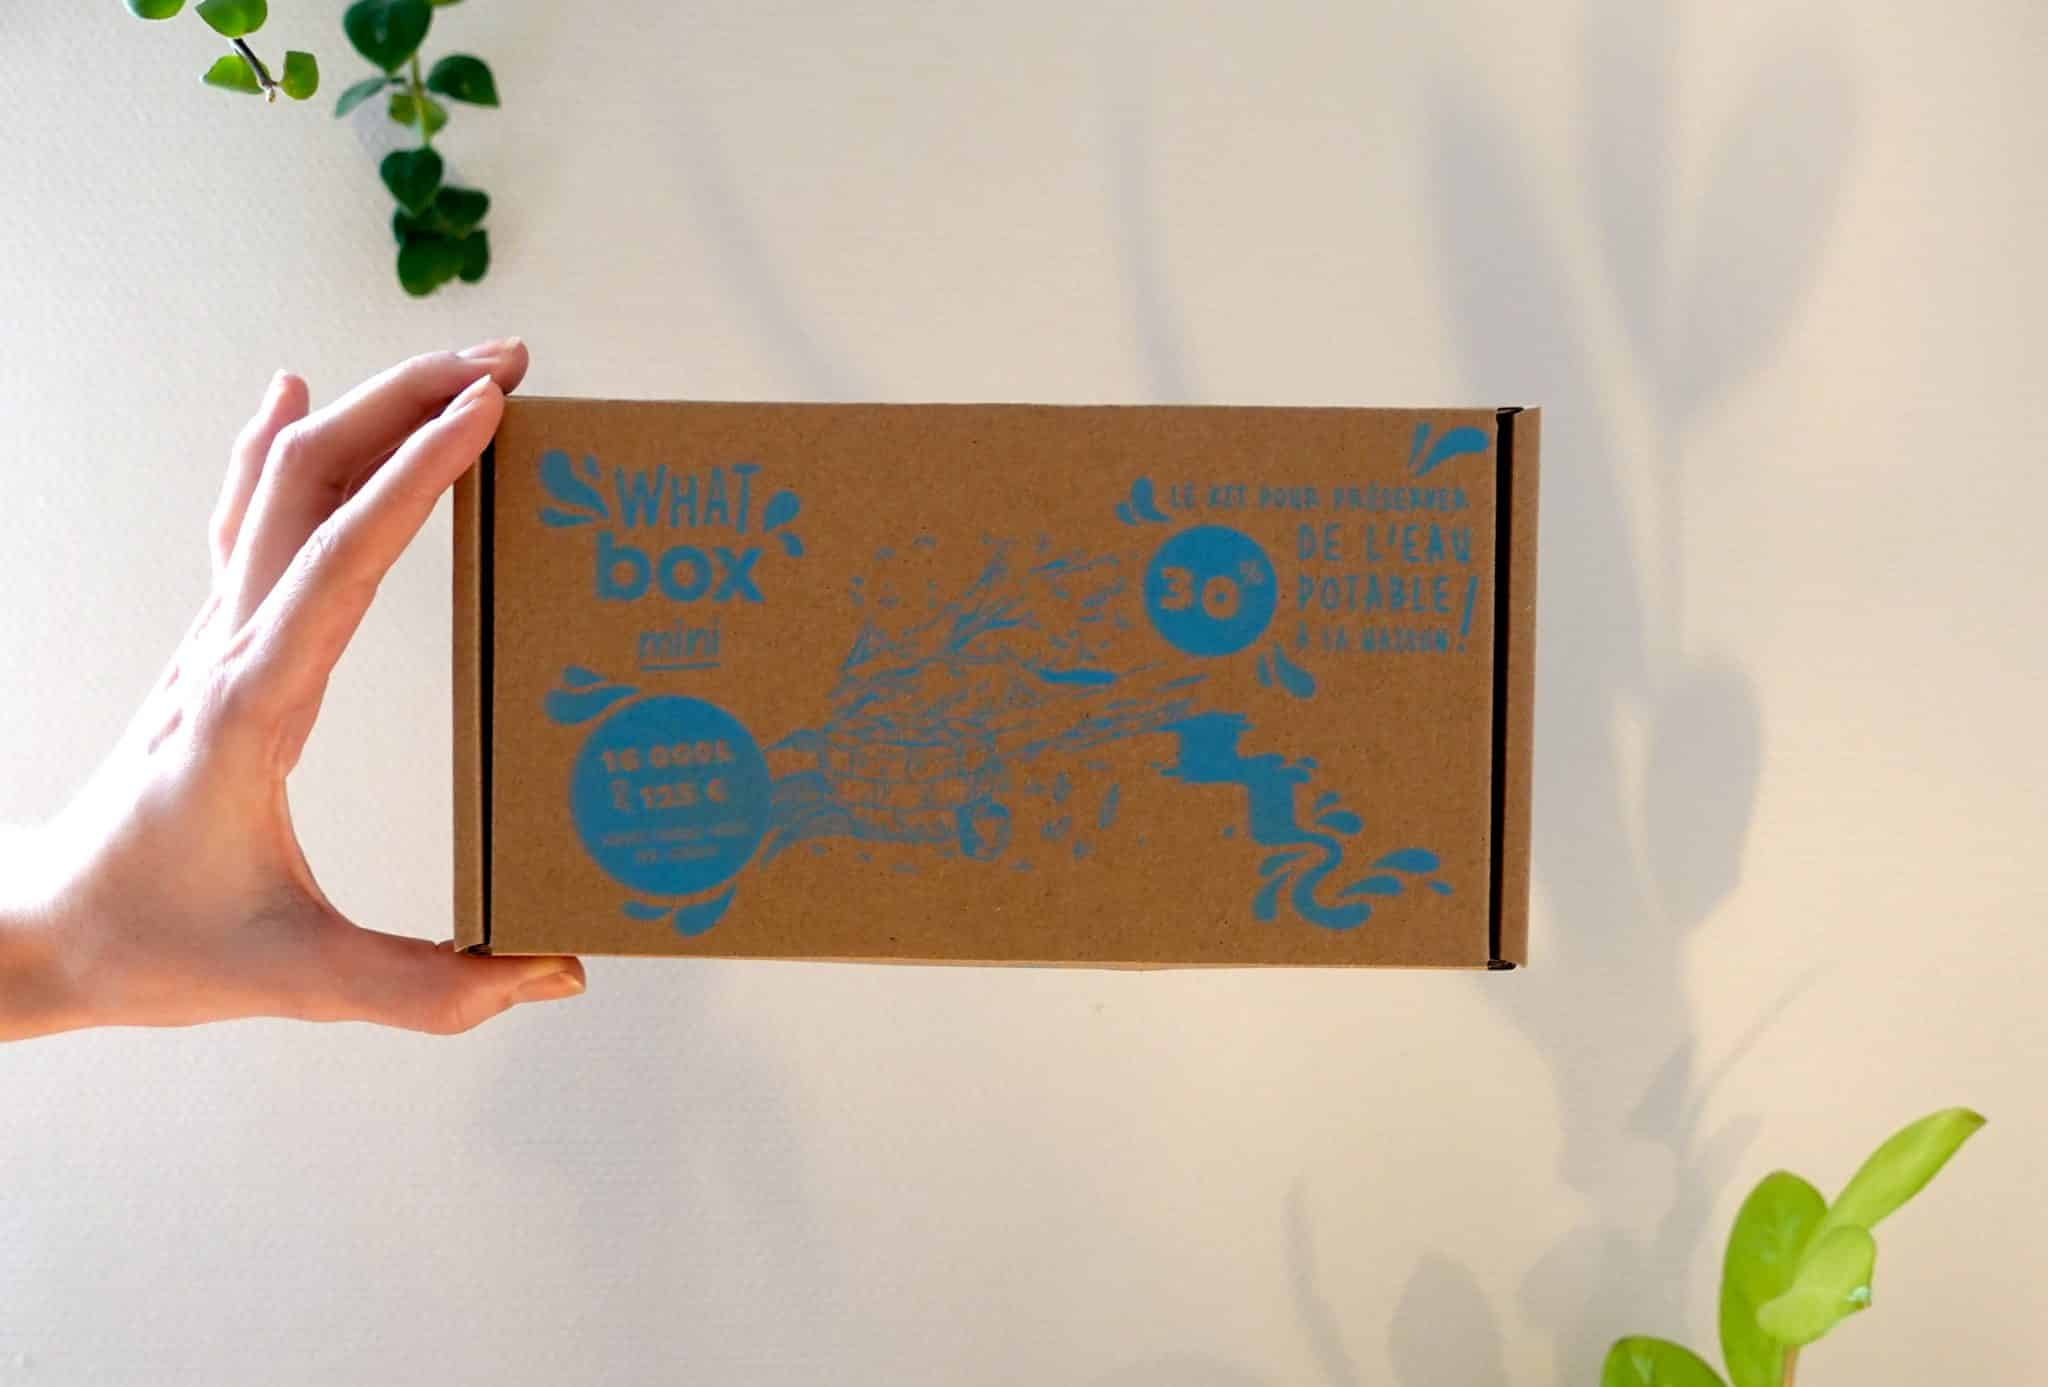 WhatBox concours